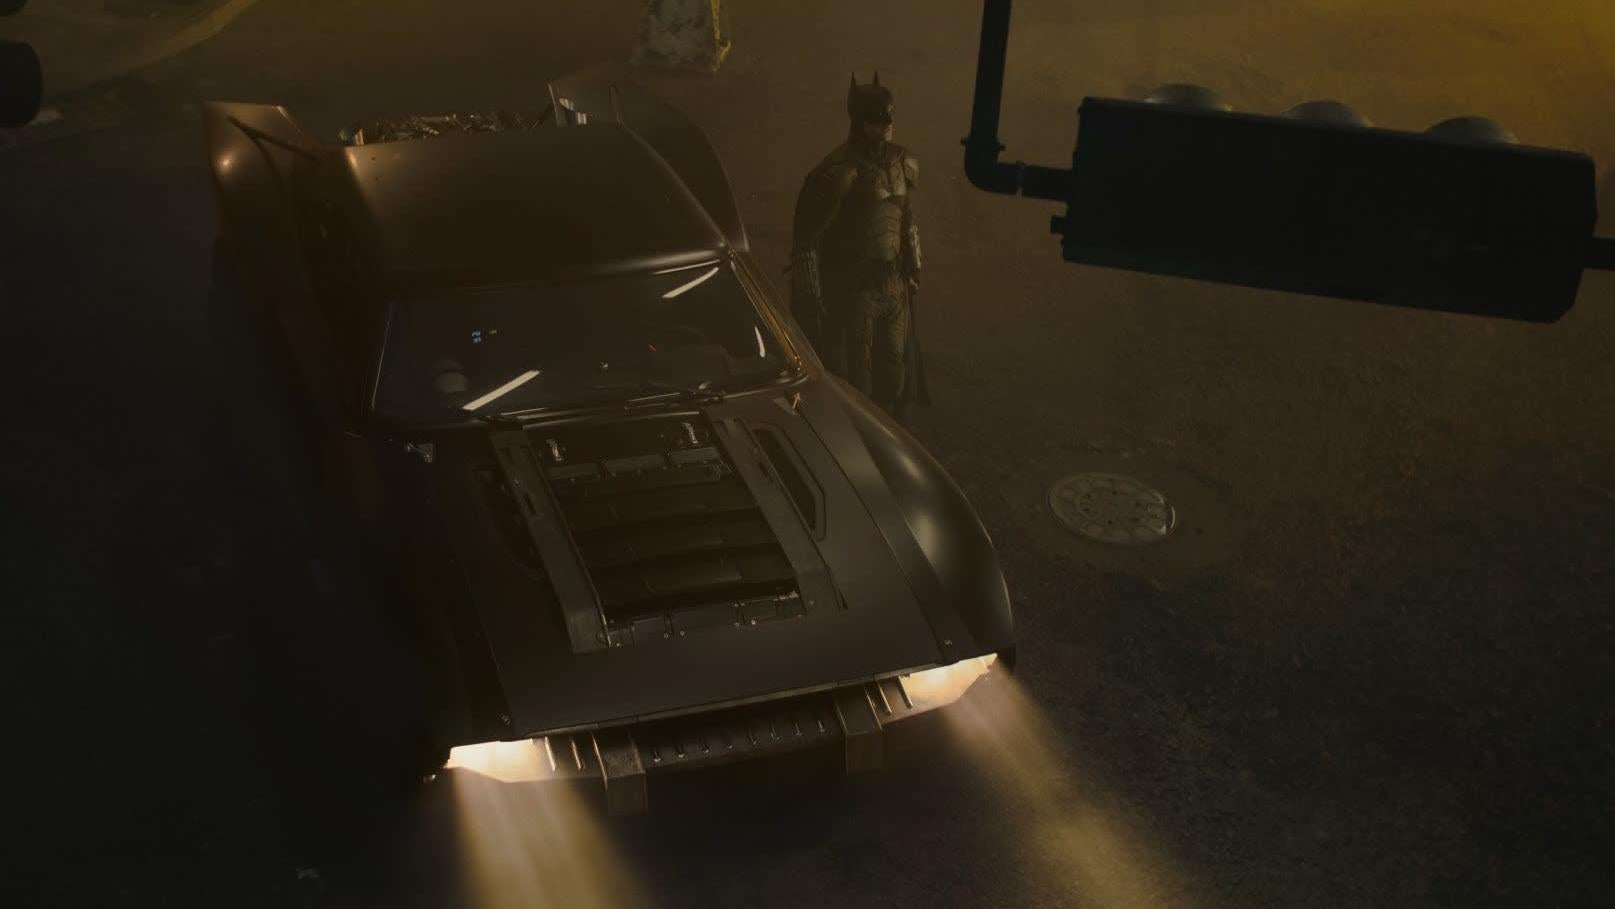 The New Batmobile Looks Like An Old Barracuda With An RV Engine In The Trunk